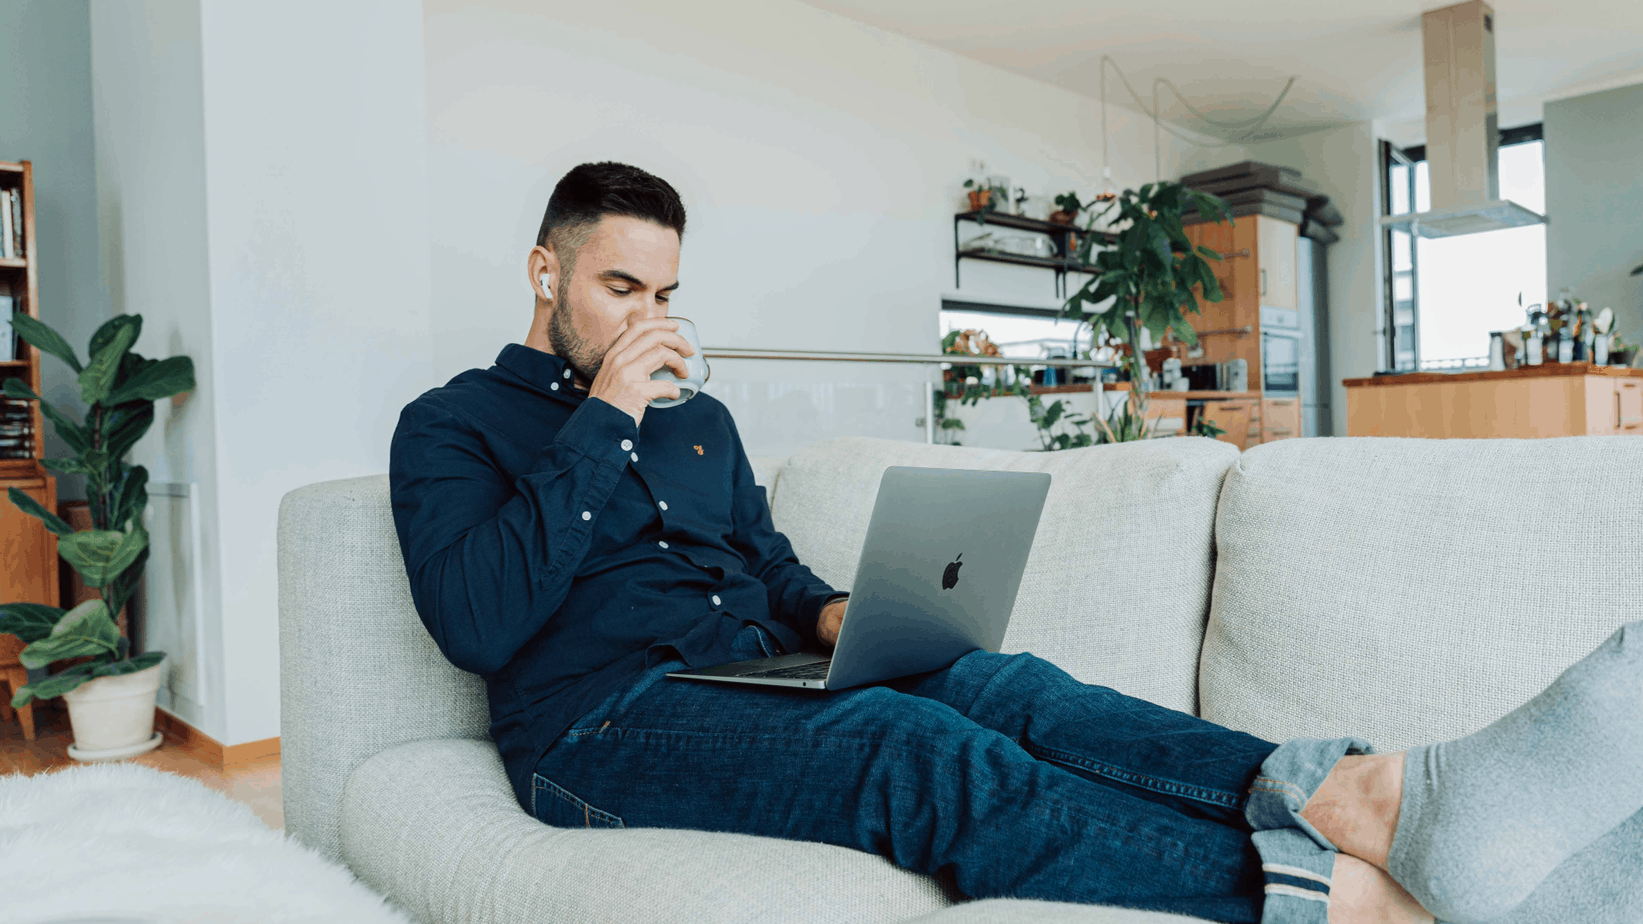 man with laptop on couch | work-first culture